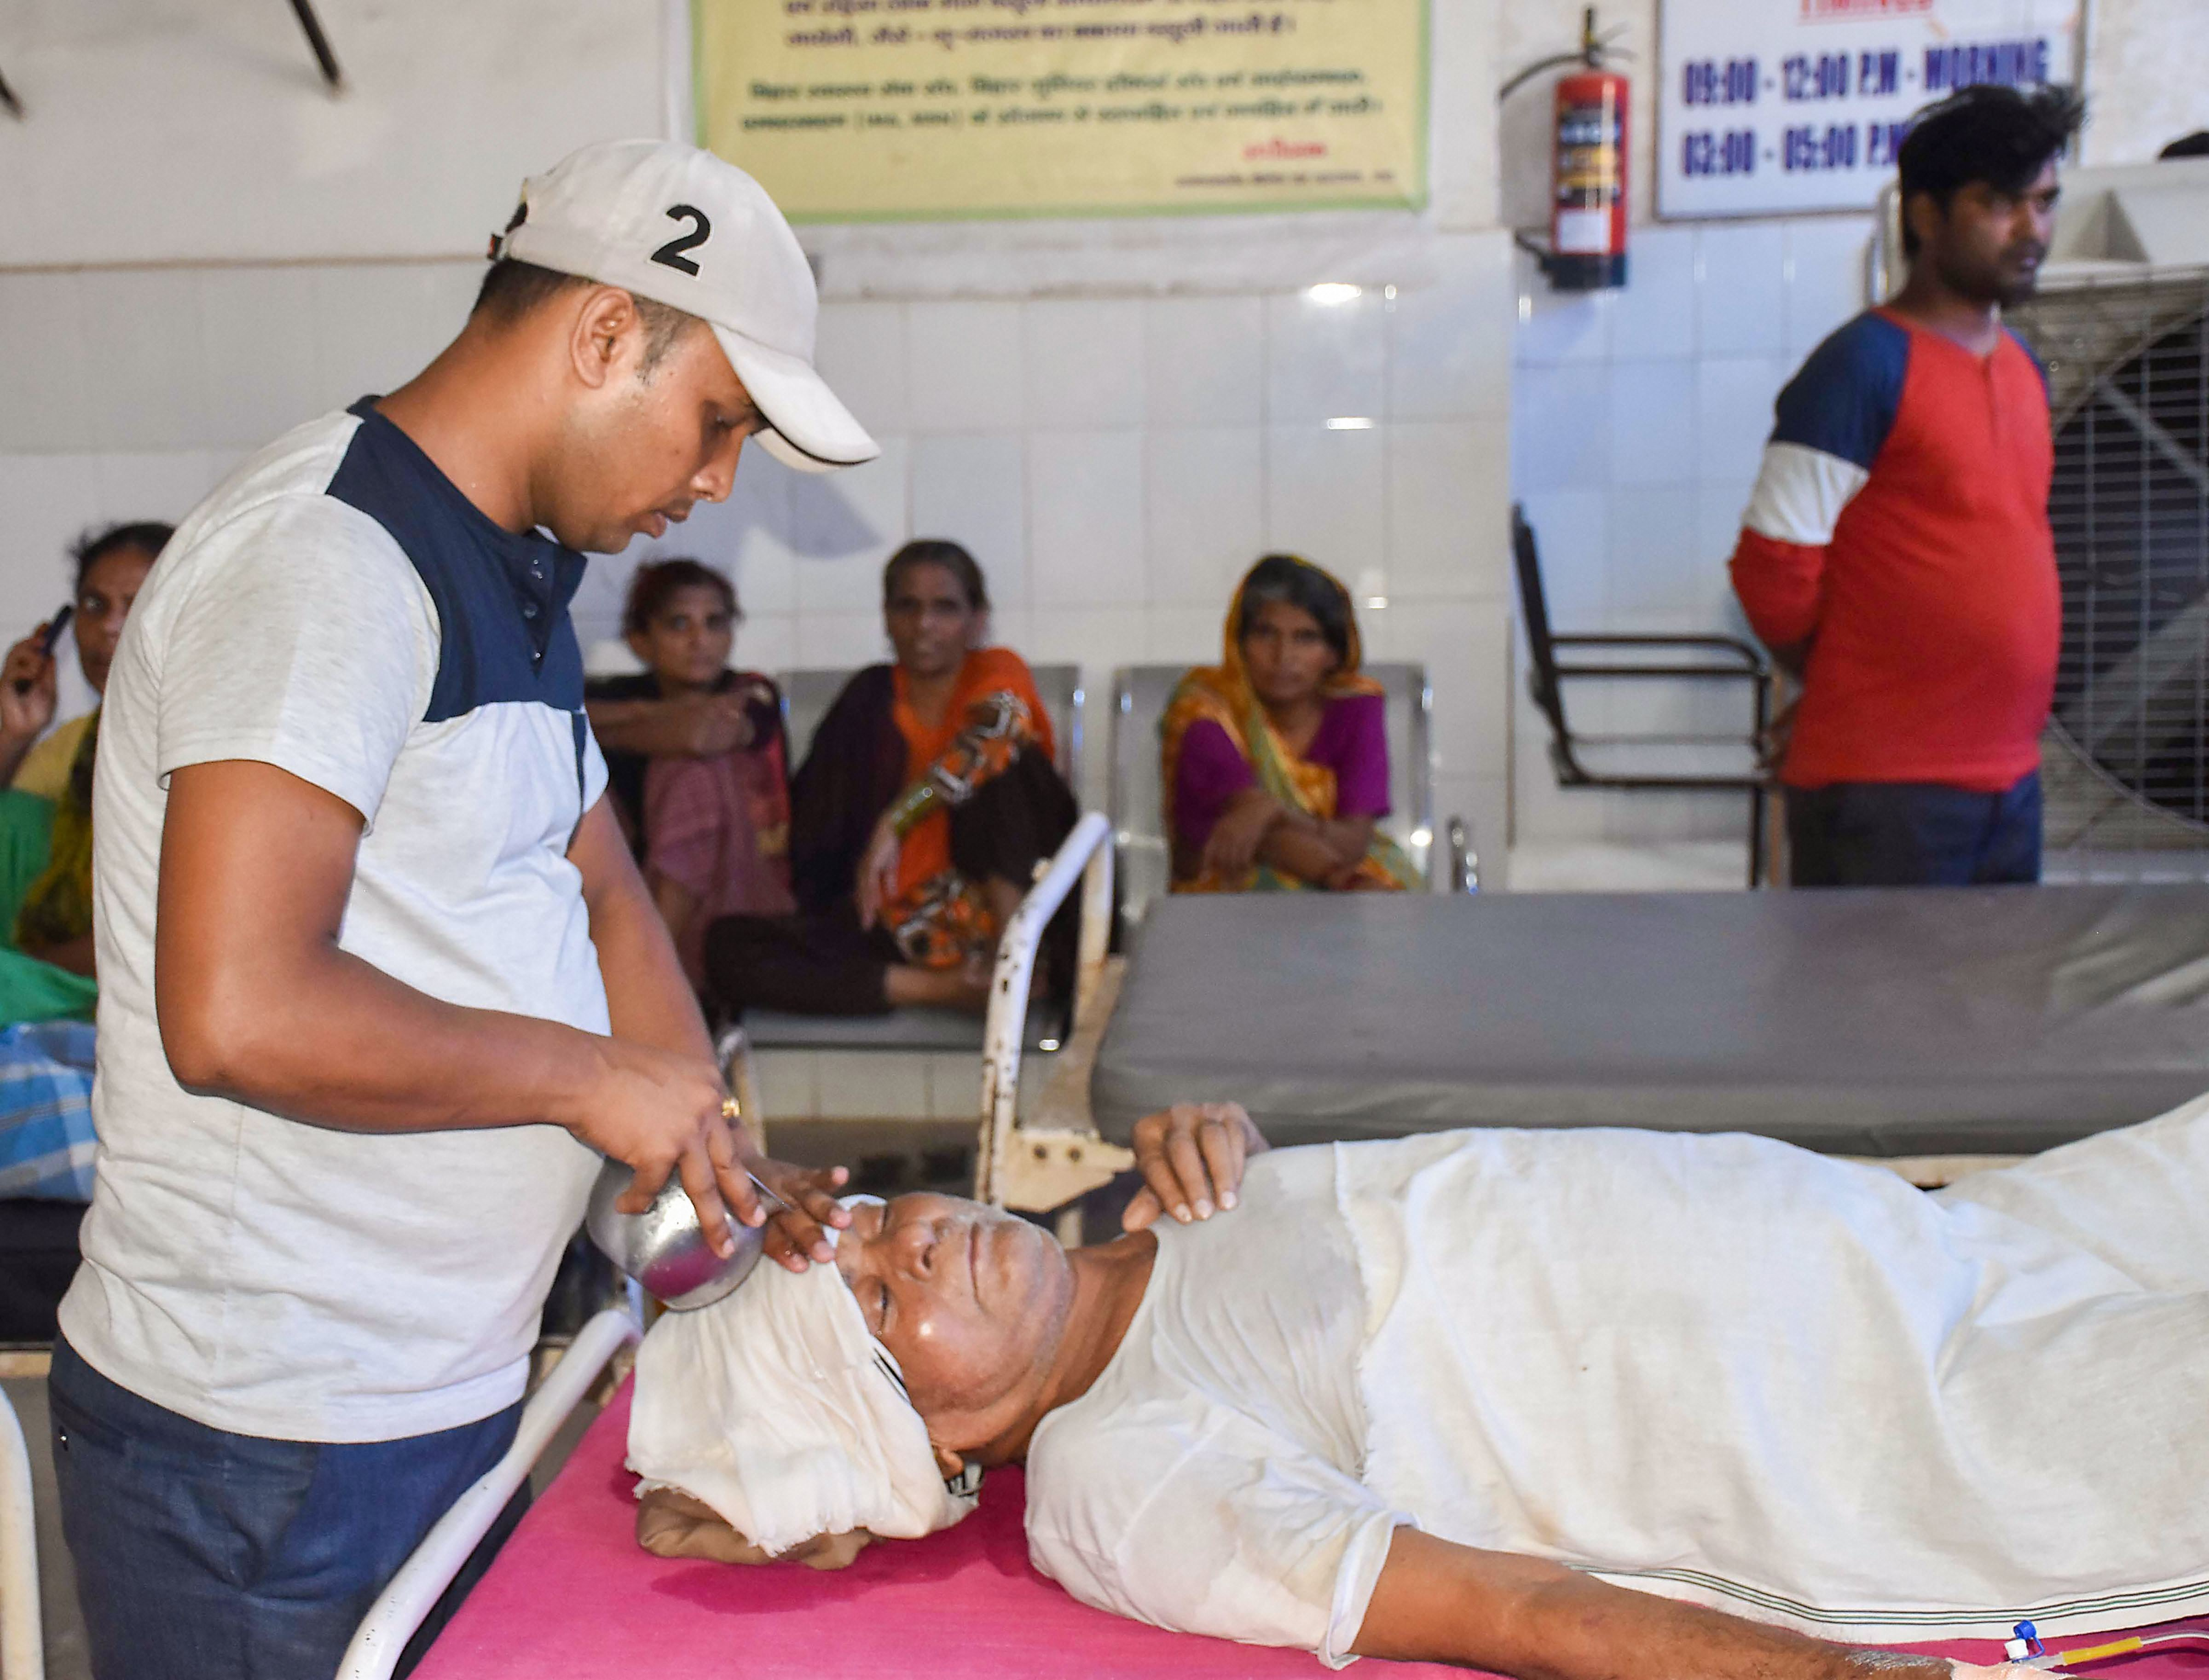 A heatstroke patient at a hospital in Gaya, Monday, June 17, 2019. A searing heatwave in Bihar claimed 15 more lives on Monday, with the death toll rising to 76